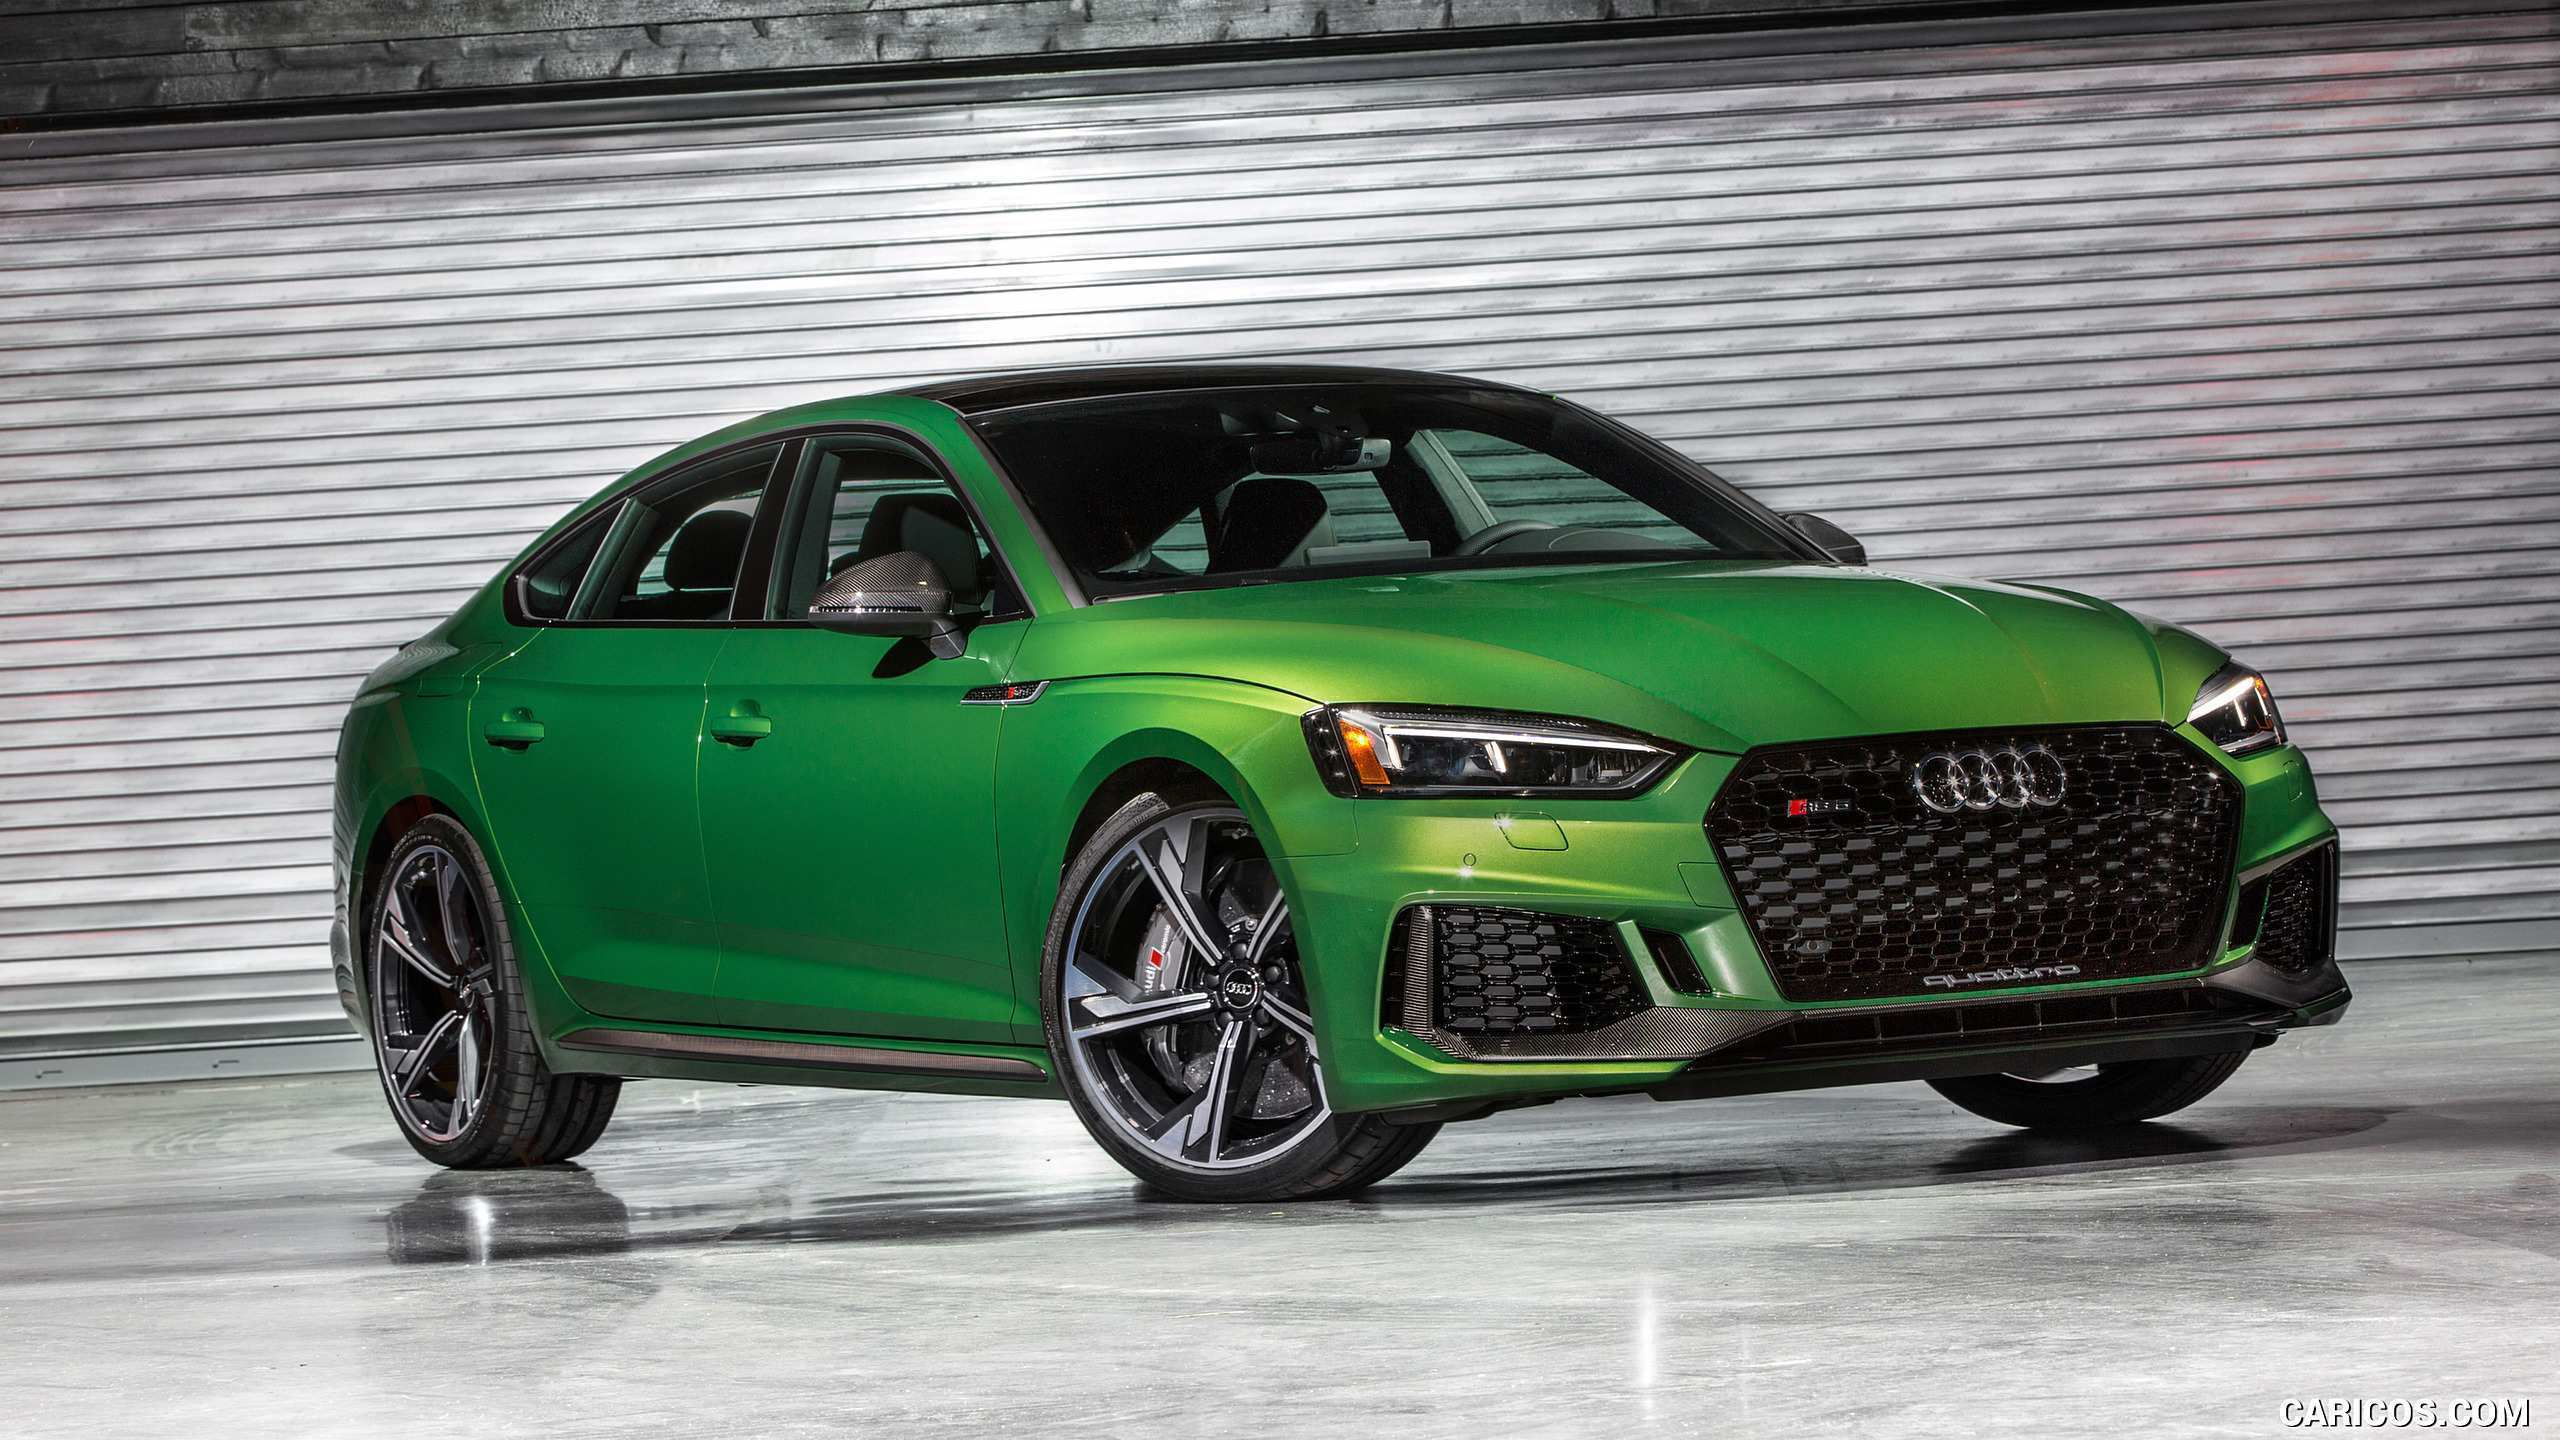 78 Best Review 2019 Audi Green Review with 2019 Audi Green